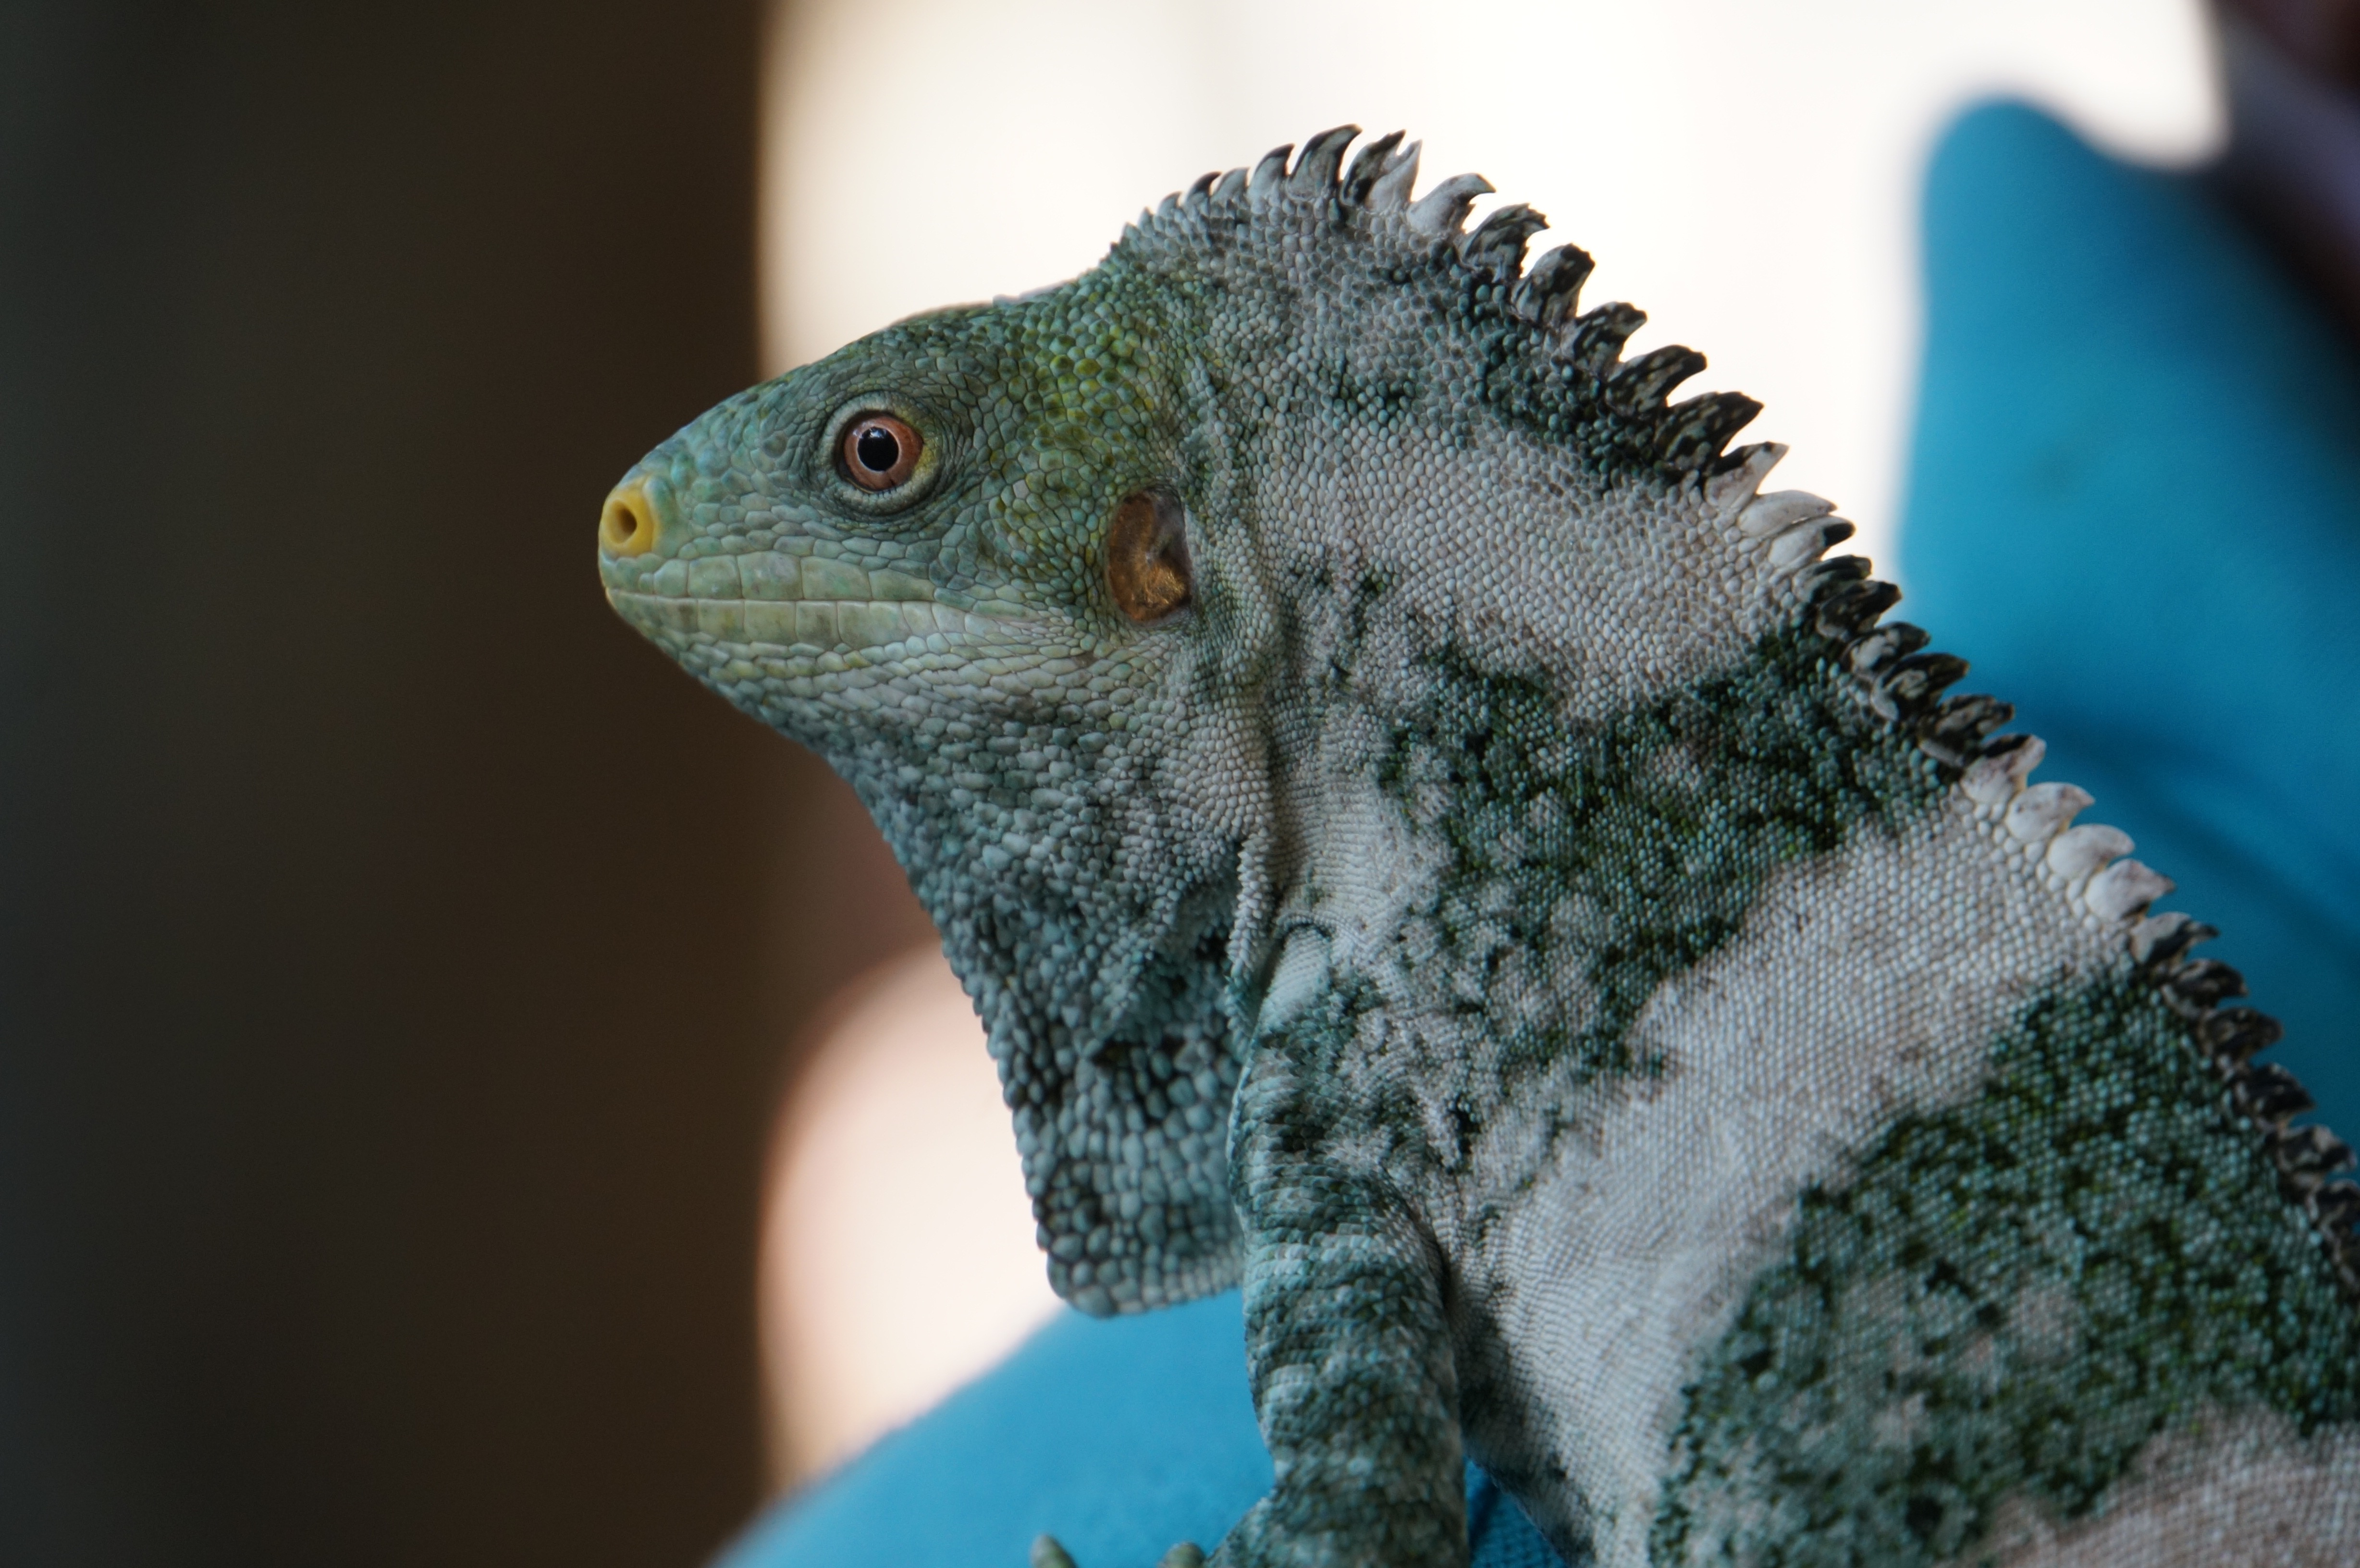 Malolo, part of the breeding program for Fijian crested iguanas at Likuliku Lagoon Resort, Fiji.